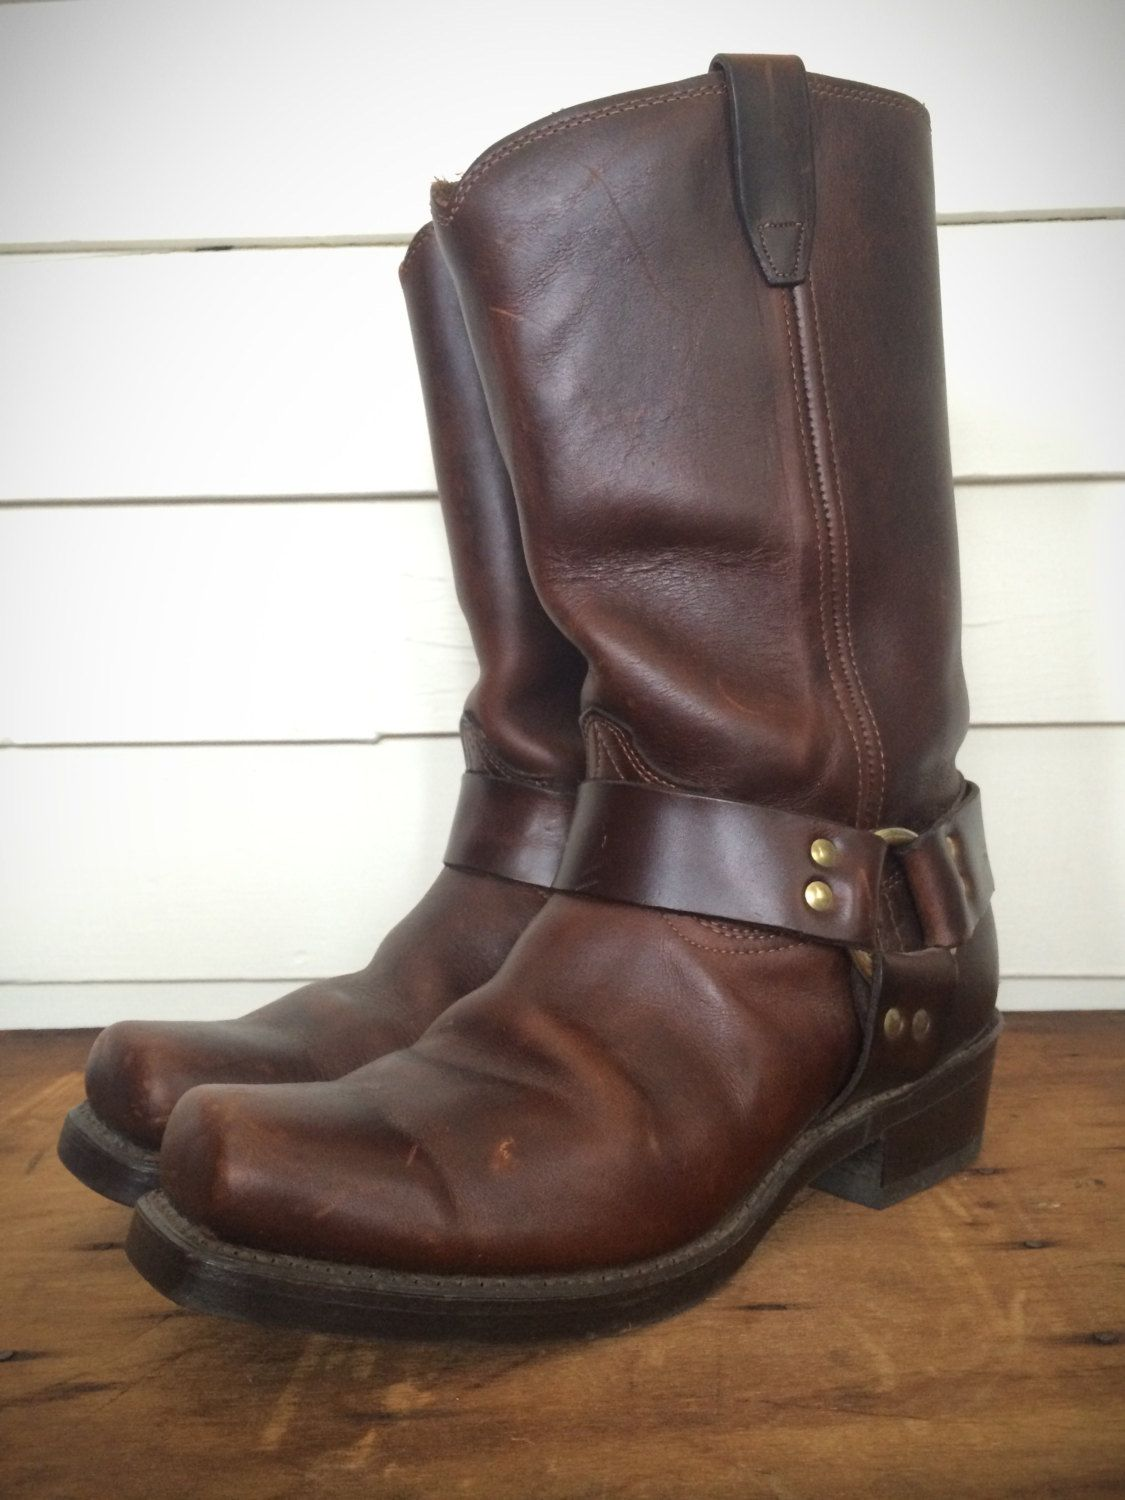 d09a85d7f84f02 Vintage Durango Brown Leather Harness Motorcycle Boots Size 8 1 2 EE by  CampCreekVintage on Etsy